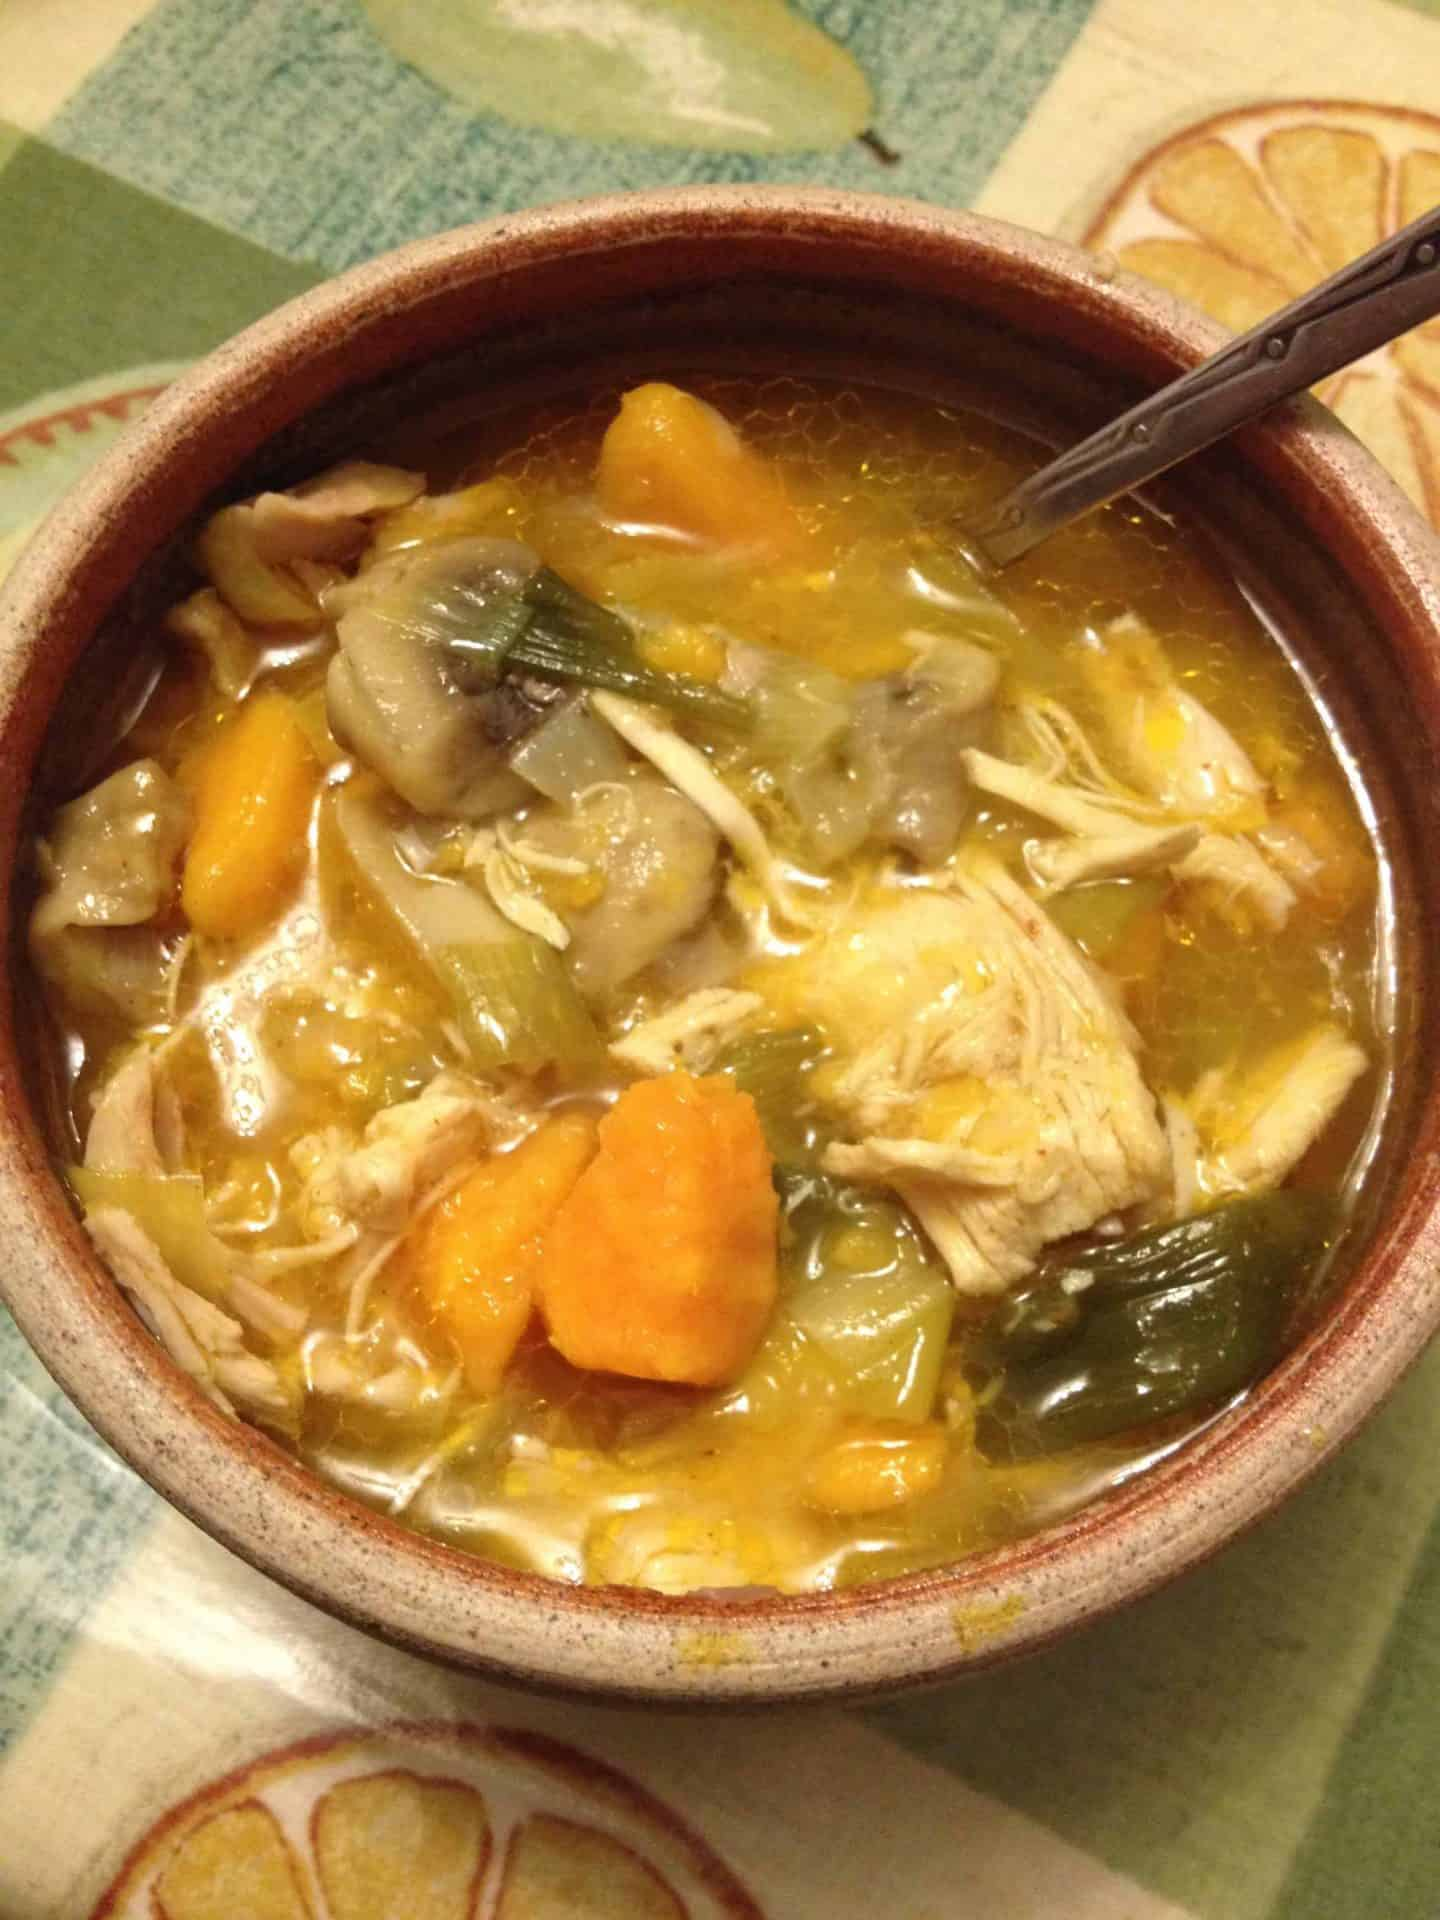 Warming winter lunches series: Cold-zapping gluten free chicken soup